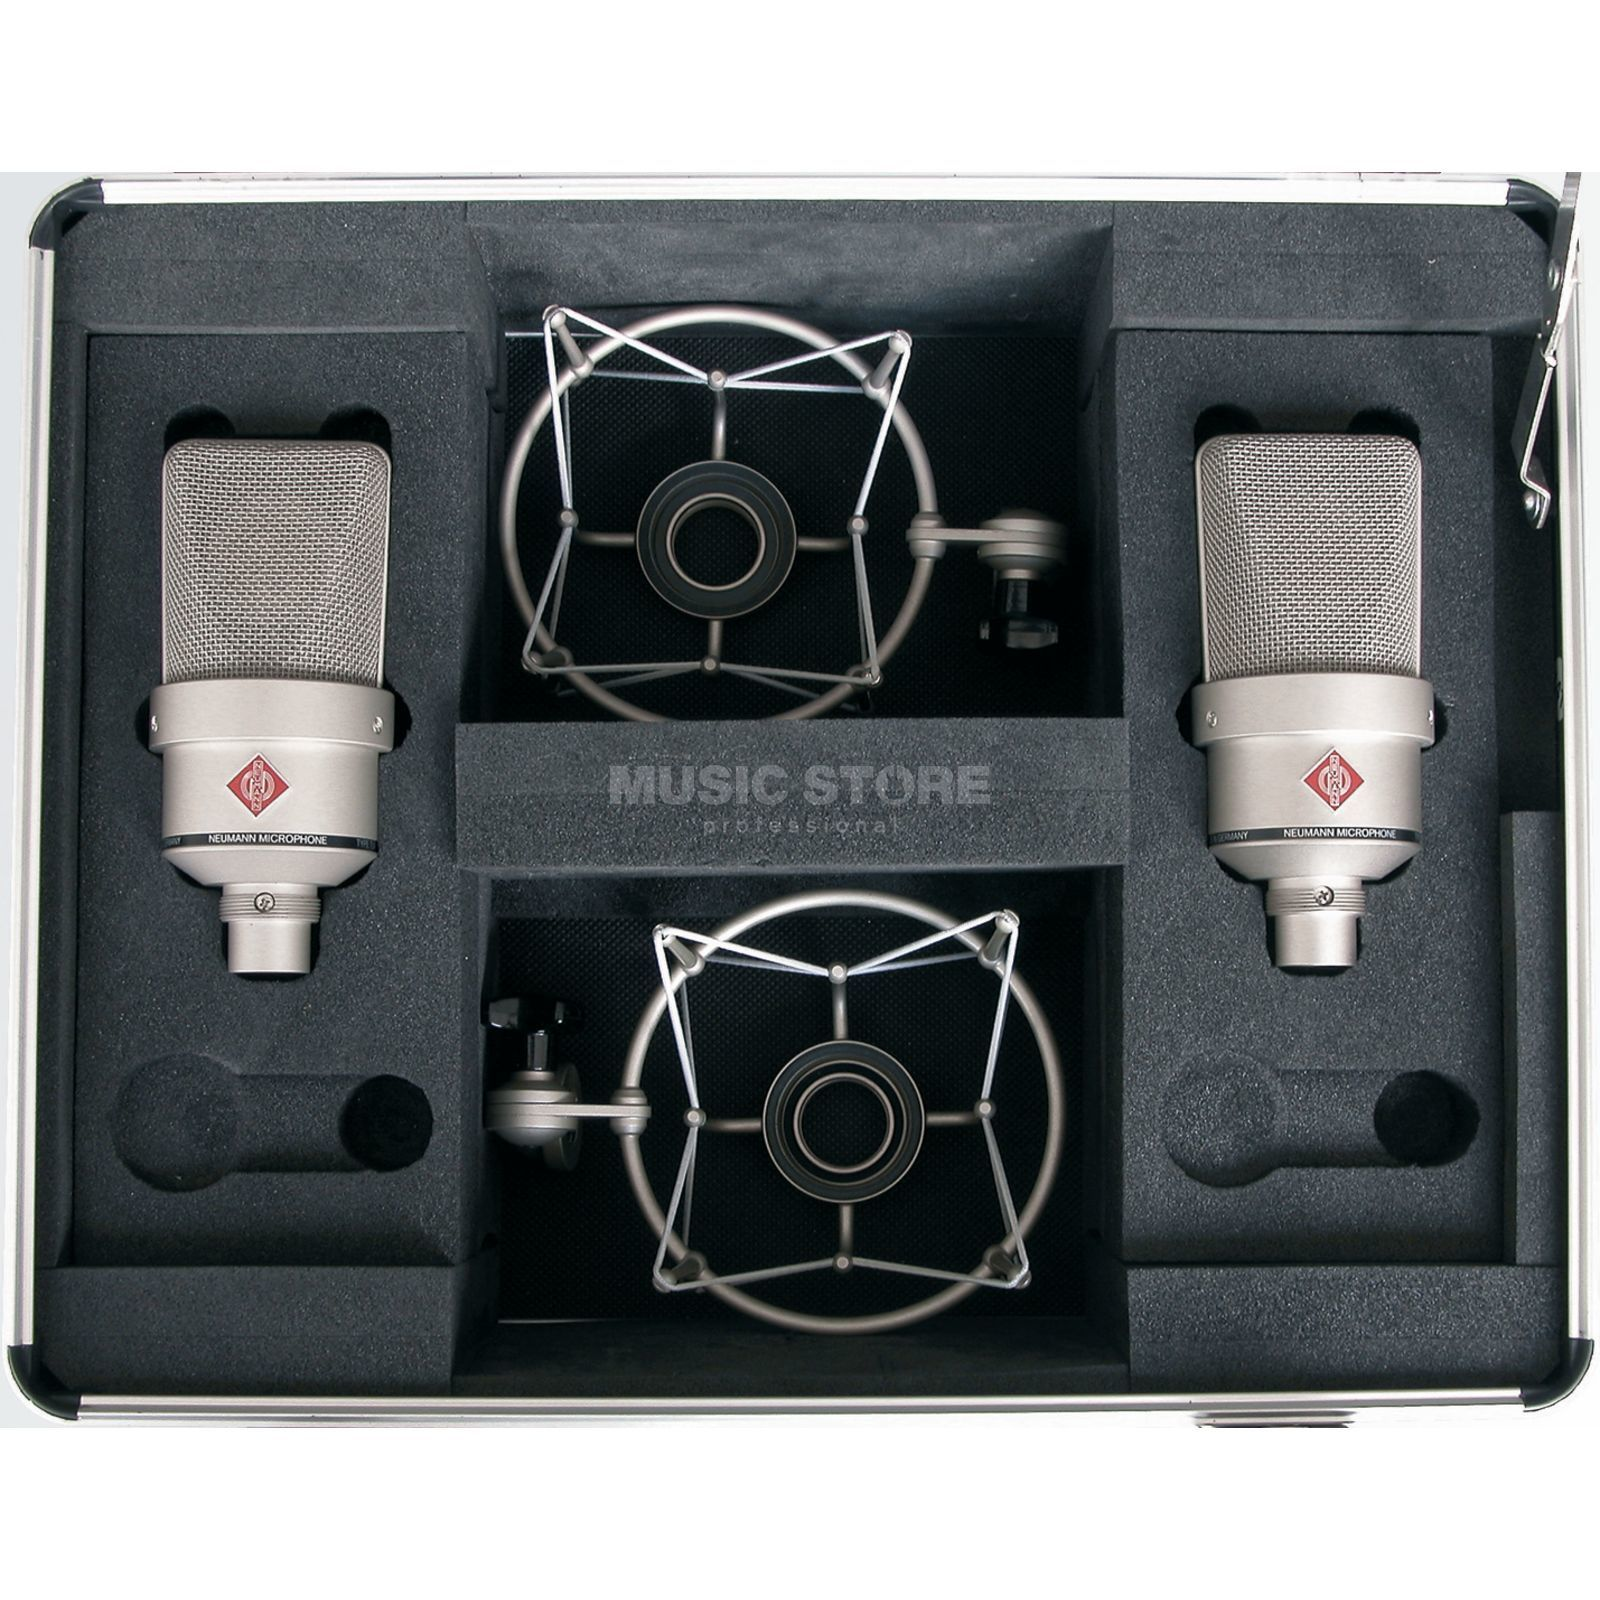 Neumann TLM 103 ni Stereo-Set nickel 2xMicro/2x EA1 El.Holder/Case Product Image